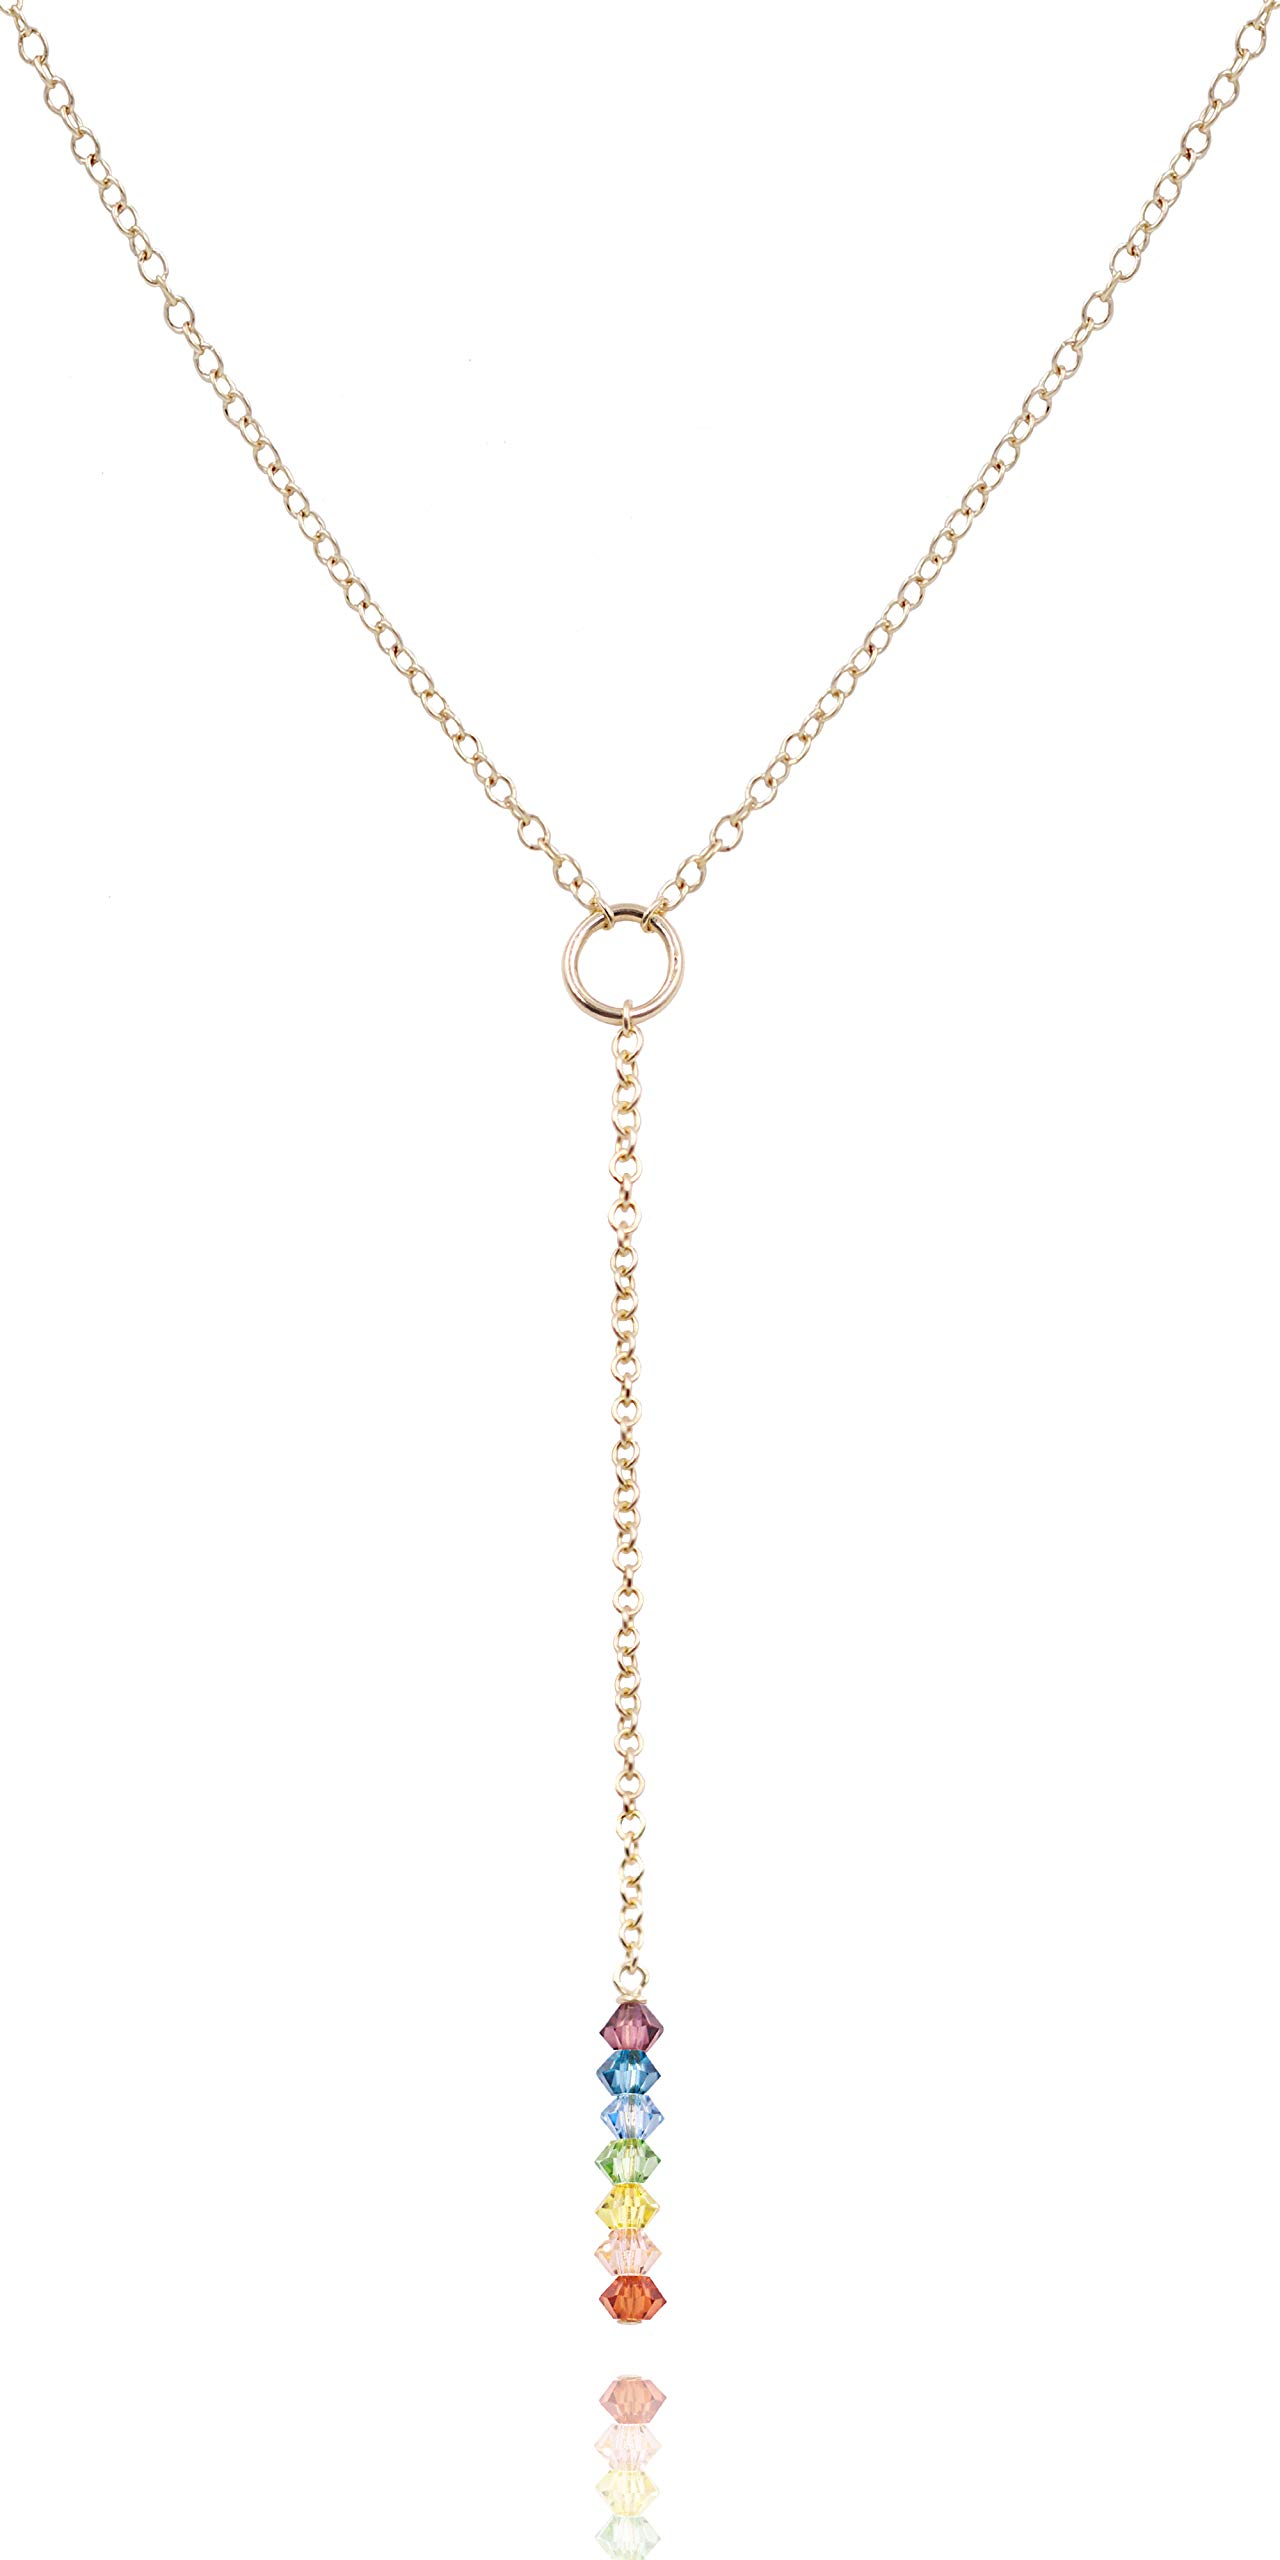 MaeMae 14K Gold Filled Y Necklace 7 Chakras Lariat Necklace, 16-18''